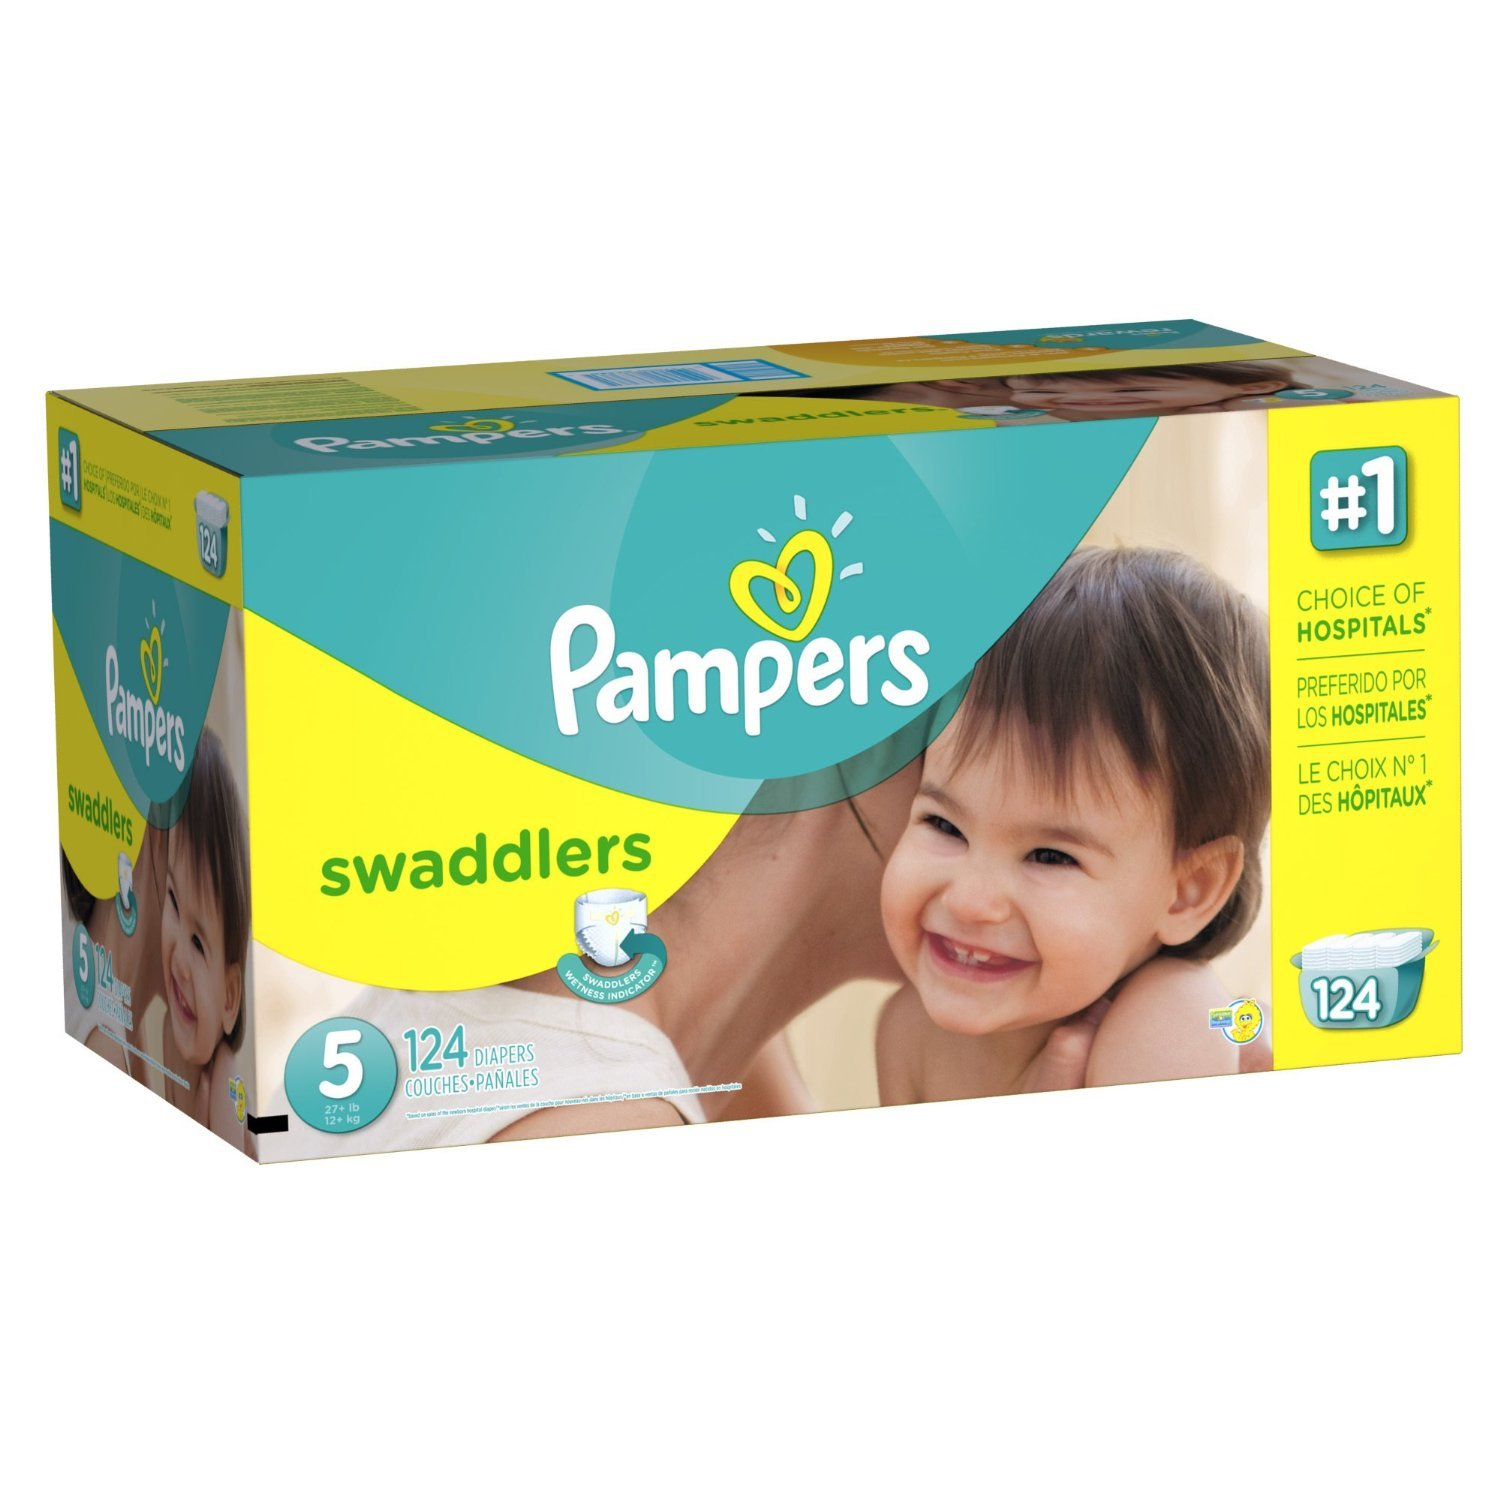 Amazon: 20 Count Pack of 3 (Total of 60 Pampers) Pampers Swaddlers Diapers, Size Newborn Just $ (As of 9/10/ PM CDT) Posted on September 10, by admin.